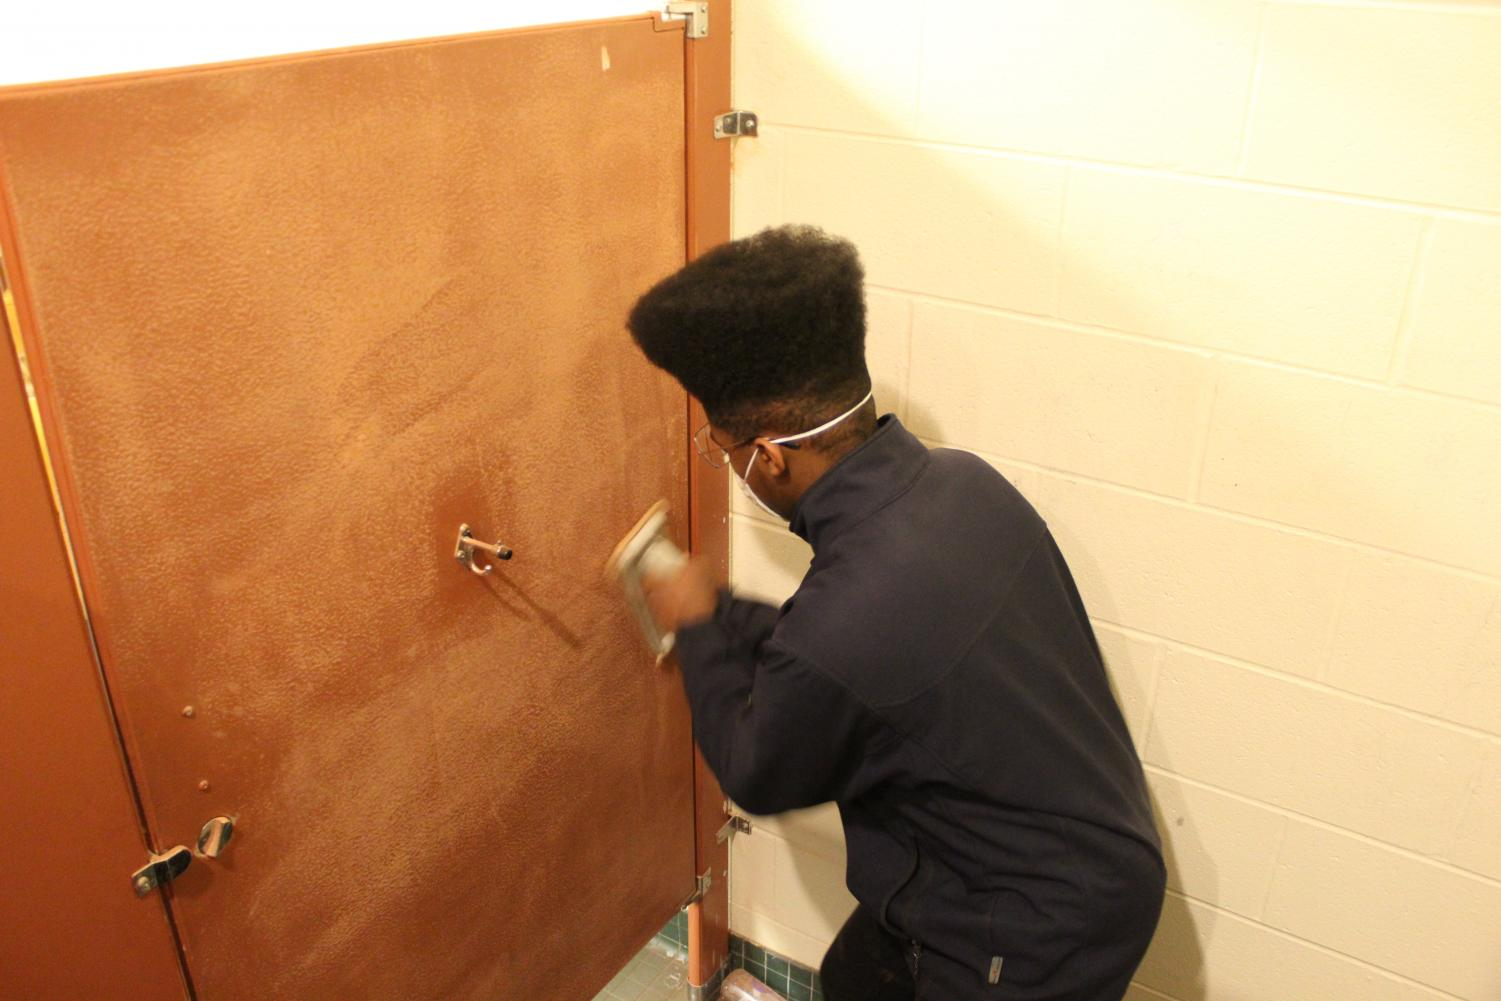 Micah Ballard, '21, vigorously sands the inside of a stall in preparation for decorating. Art club members hope this will not only beautify the school, but also discourage vandalism.